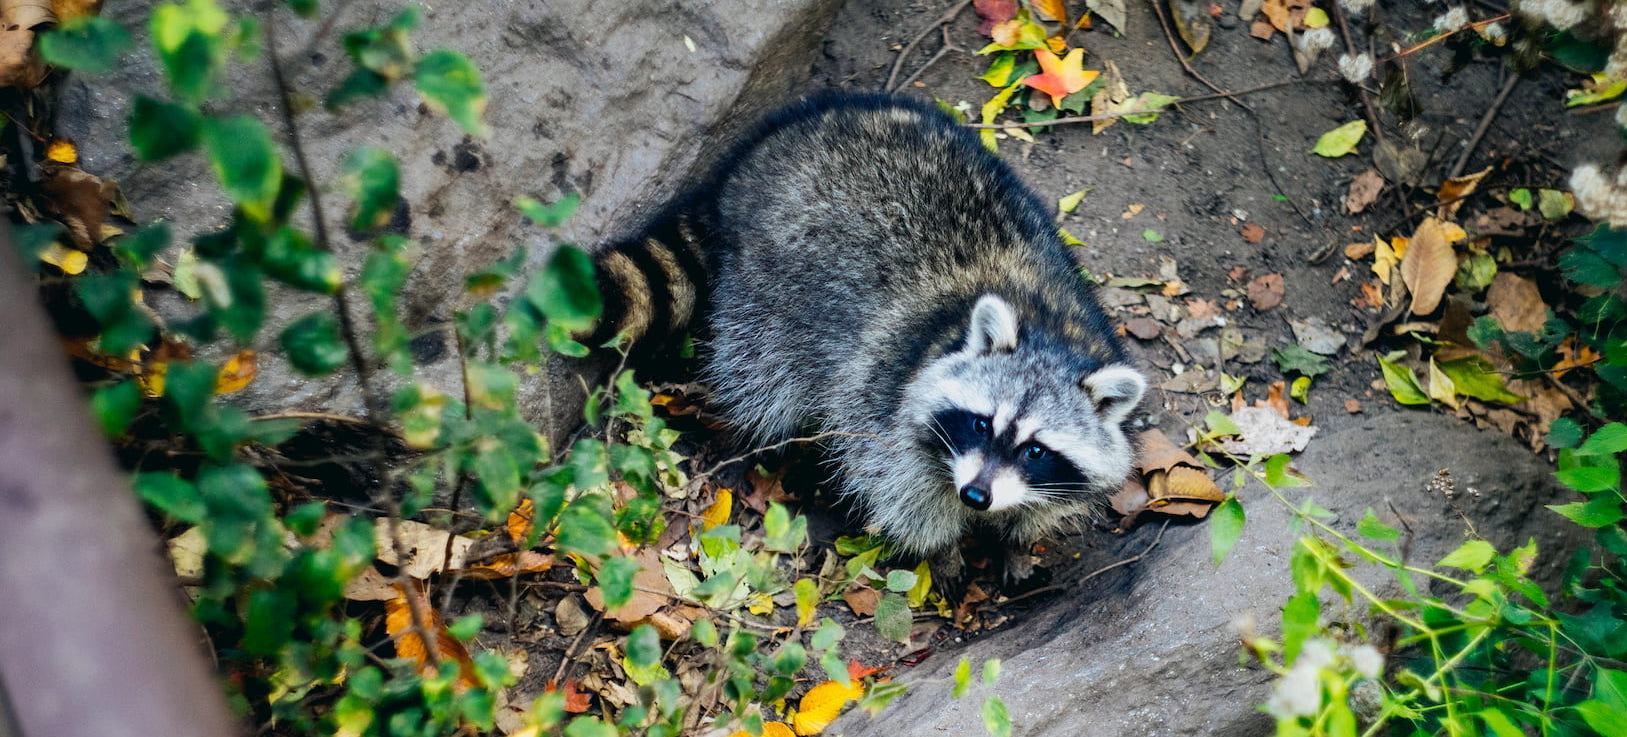 raccoon in the garden